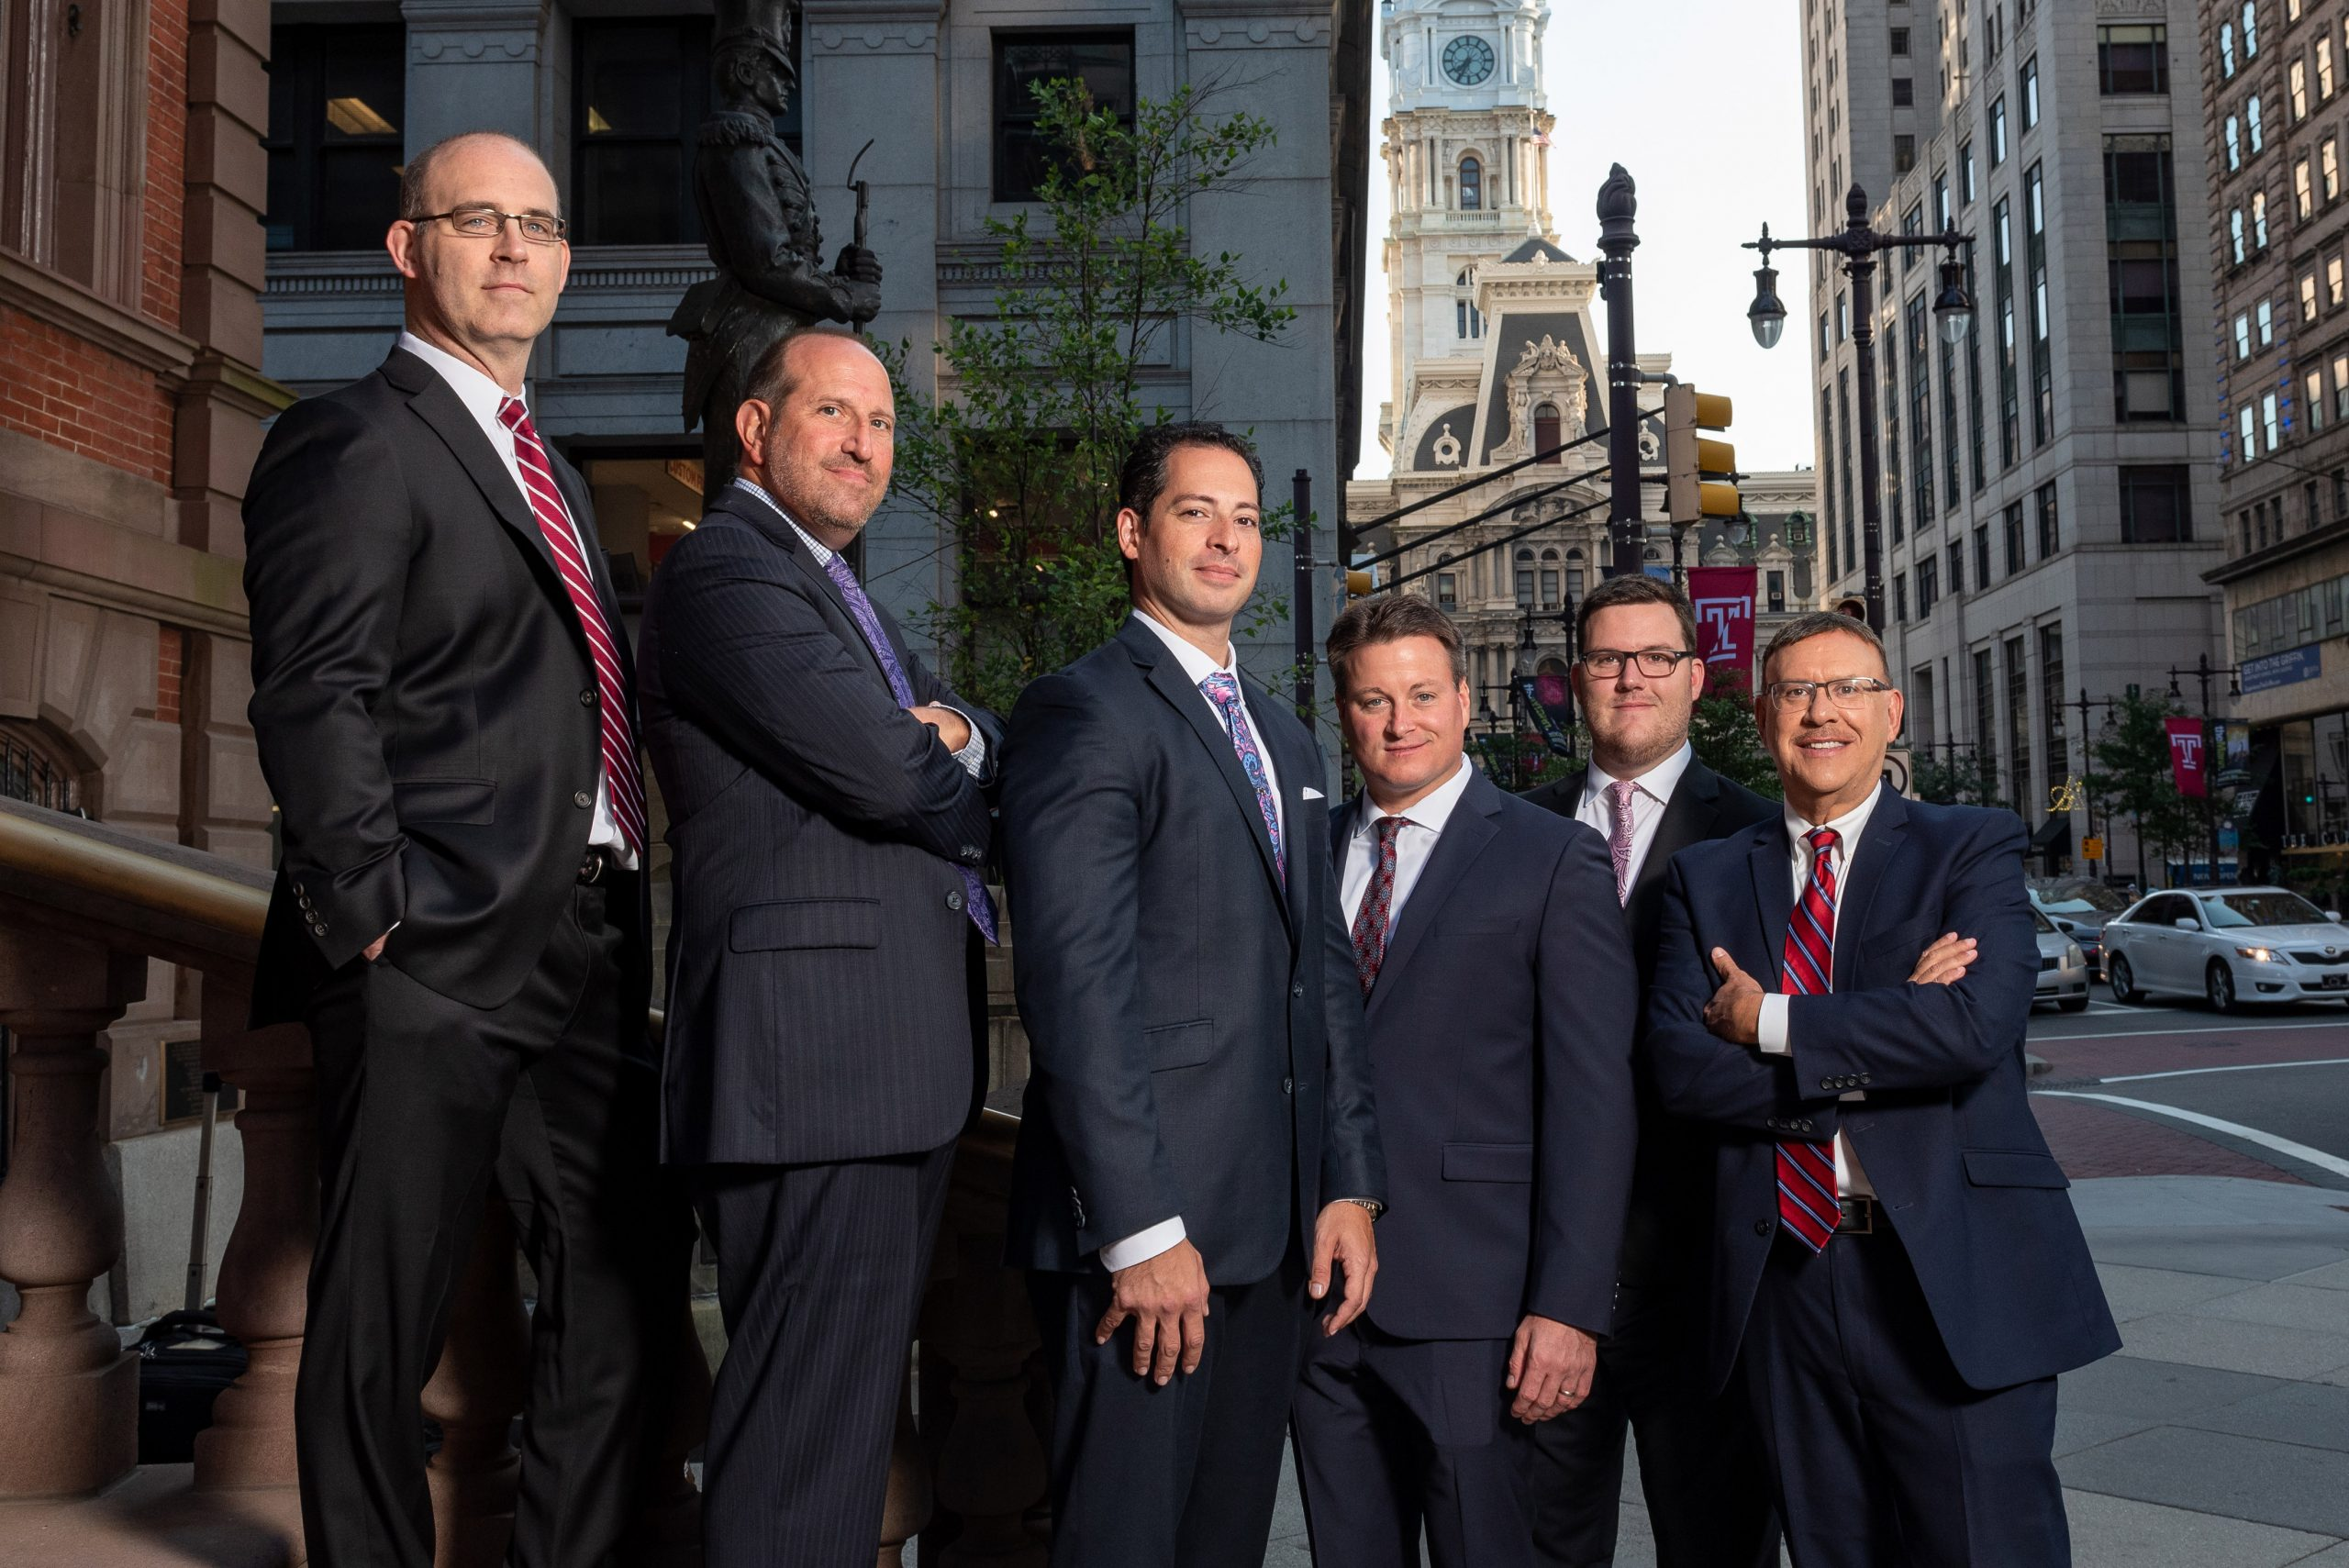 Spear Greenfield Personal Injury Attorneys legal team on outdoor steps in Philadelphia in front of City Hall